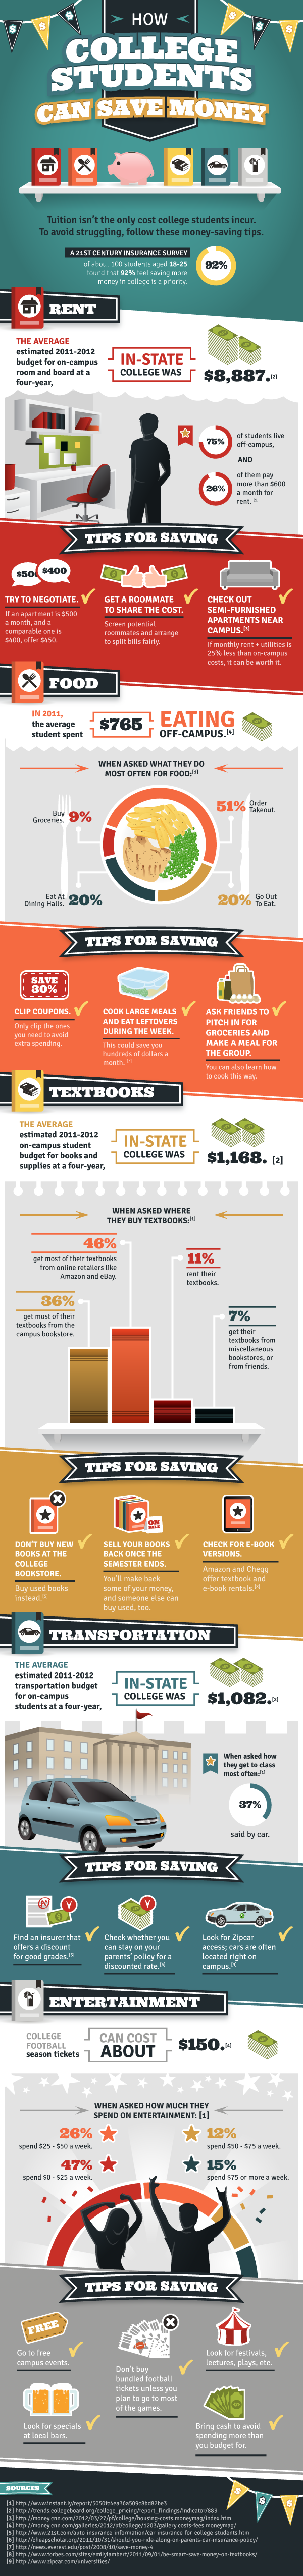 21st-how-college-students-save-money